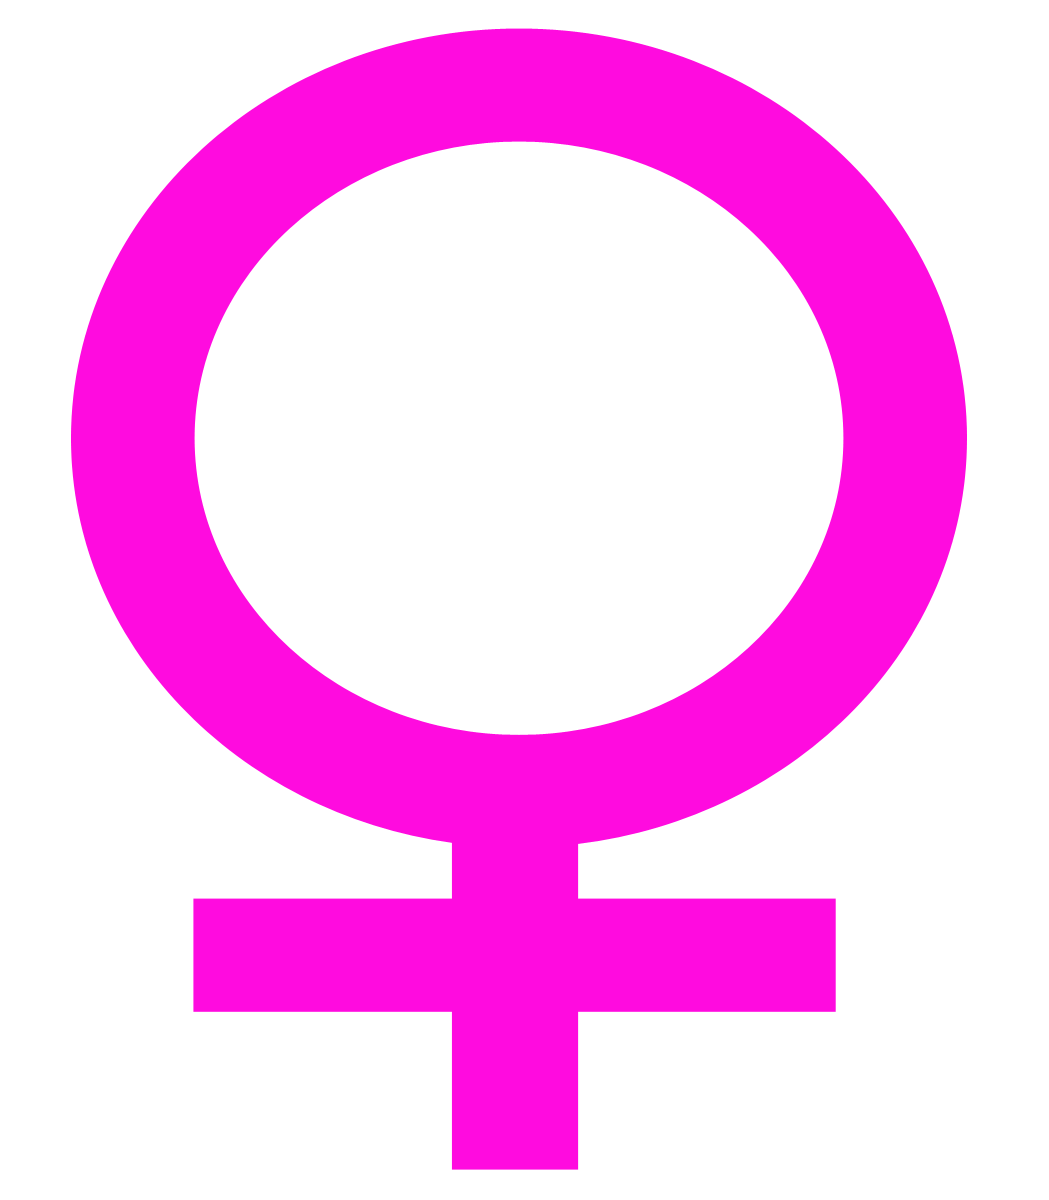 Free Women Symbol Cliparts, Download Free Clip Art, Free.